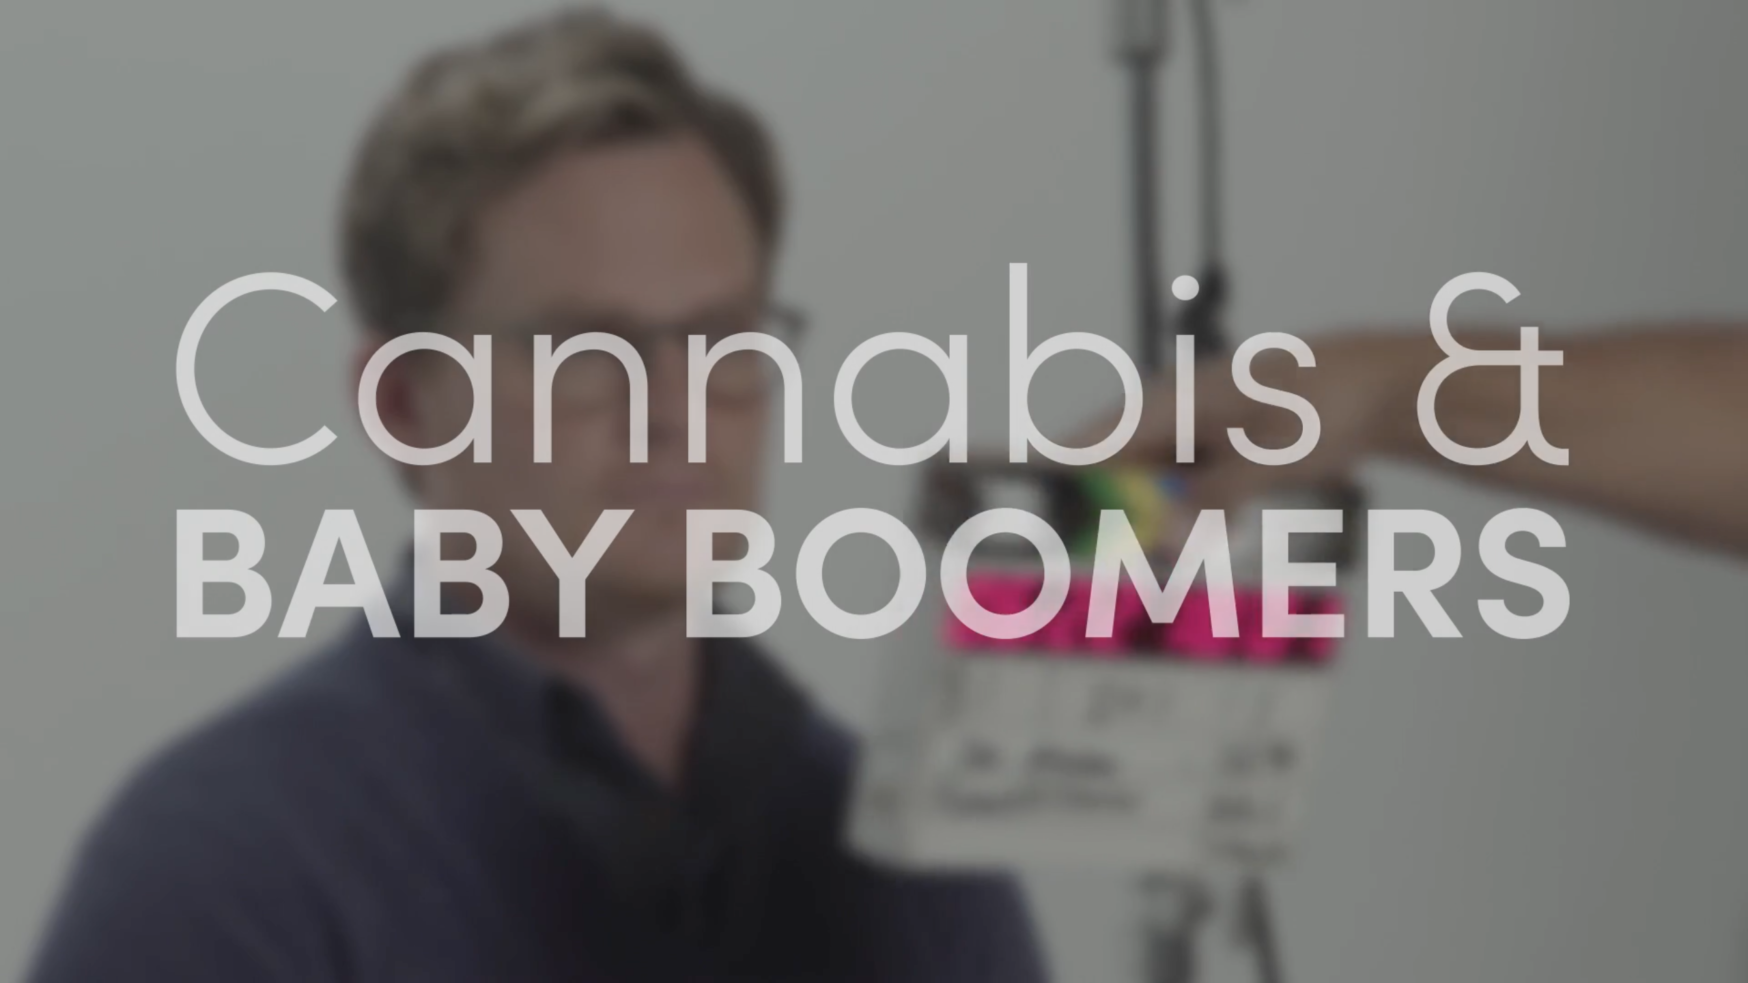 Cannabis is used by baby boomers